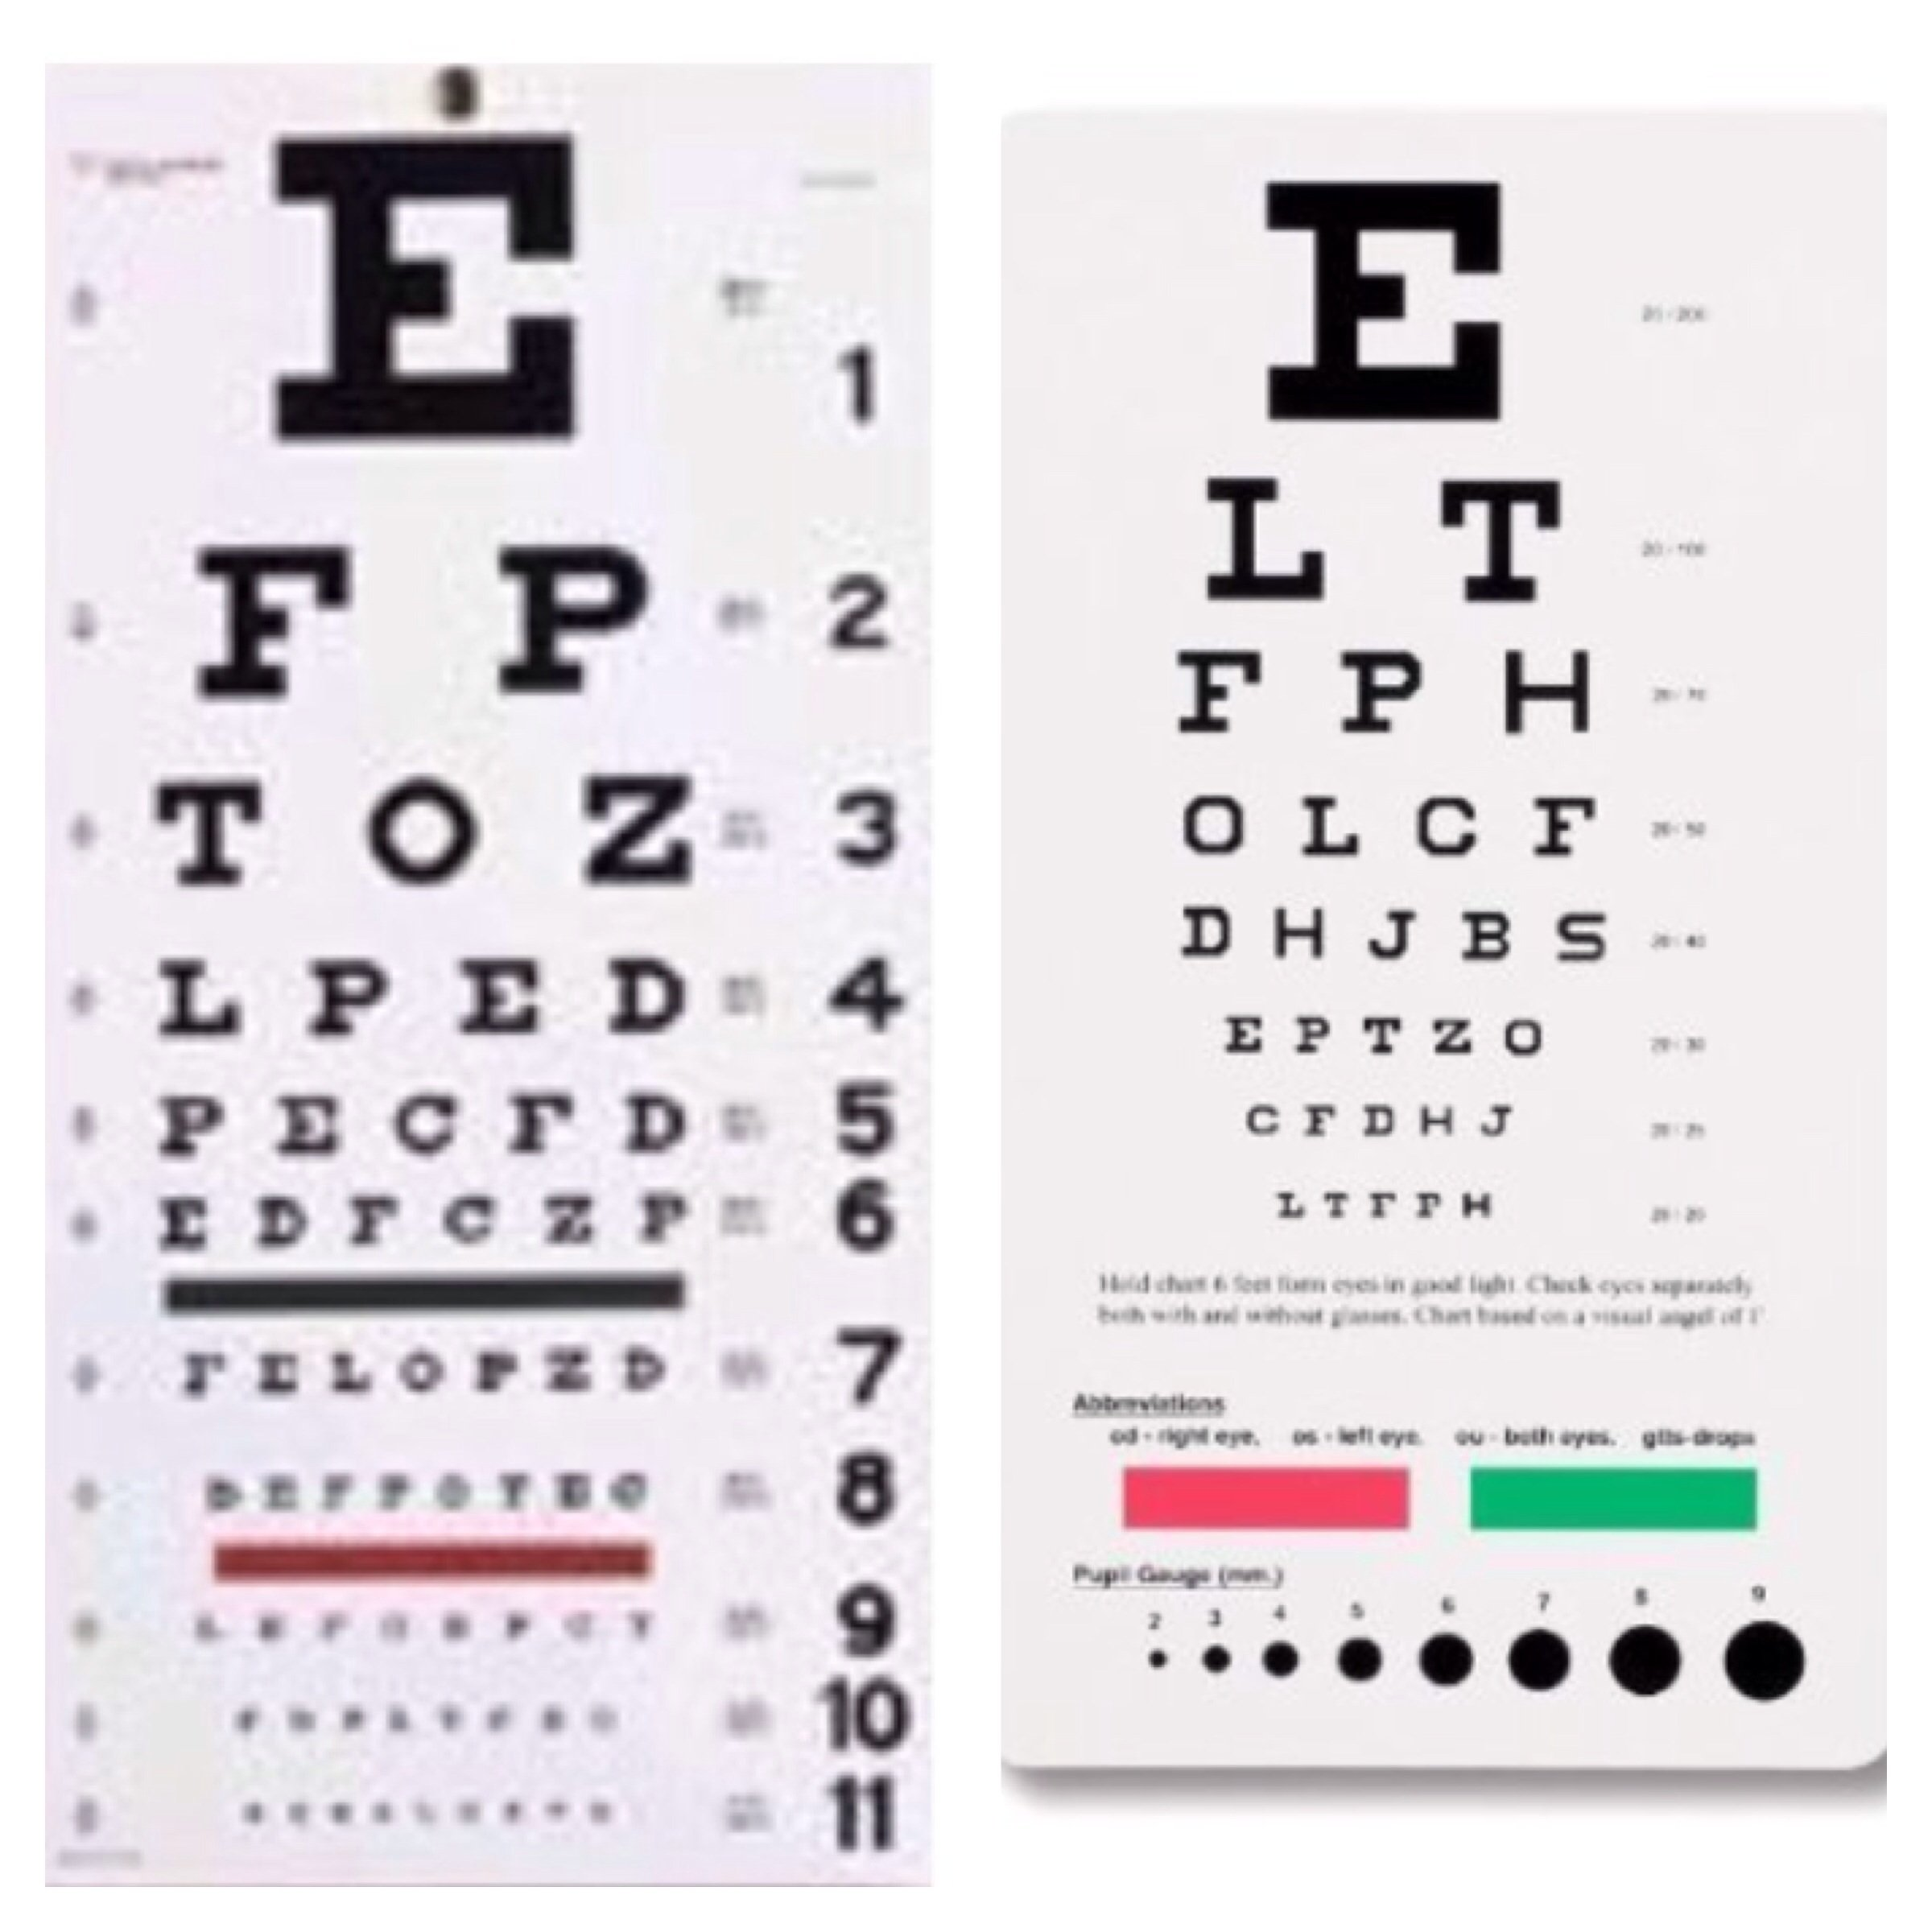 EMI Snellen Eye Wall Chart 22'' By 11'' AND Snellen Eye Pocket Chart 6 3/8'' By 3 1/2'' - 2 Piece Combination Pack